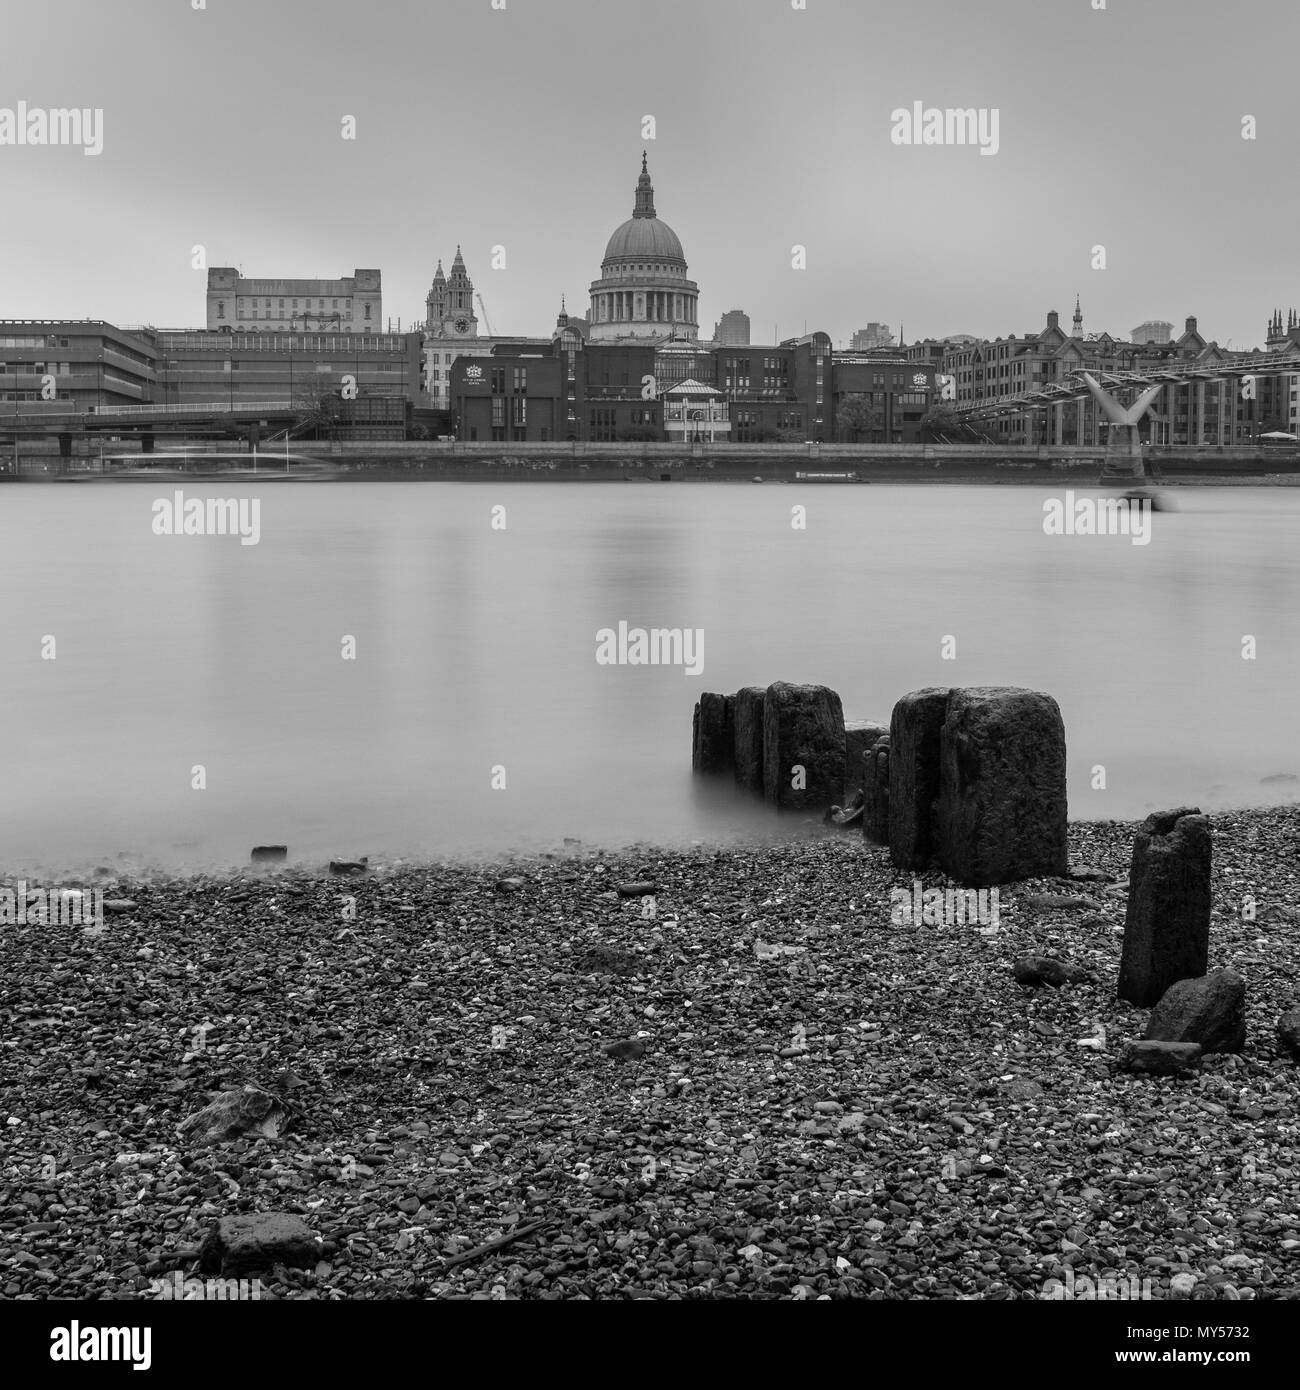 London, England, UK - May 29, 2018: Grey skies and air pollution shroud St Paul's Cathedral and the City of London across the River Thames from Banksi - Stock Image